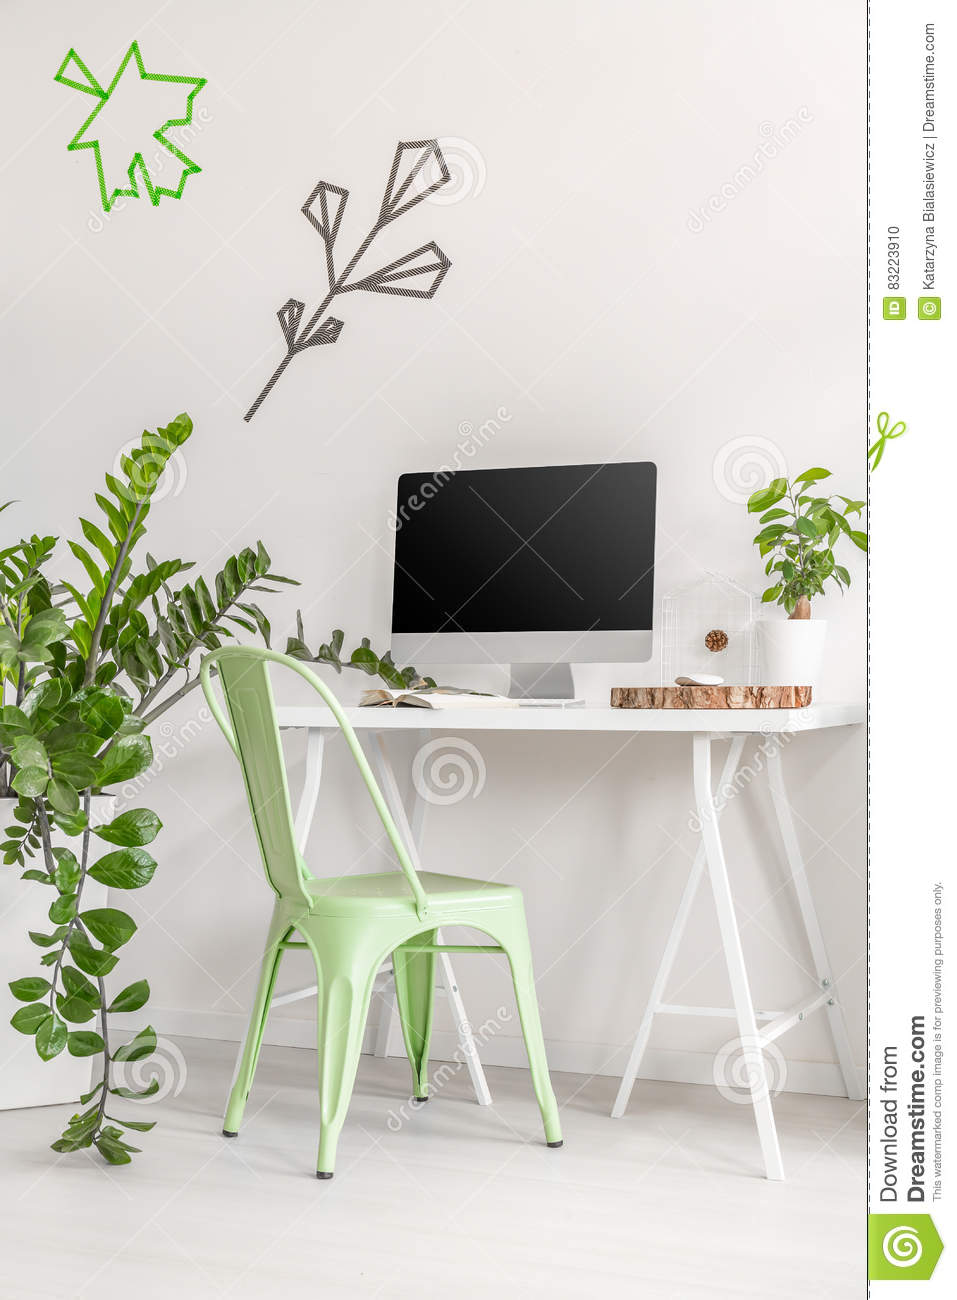 Minimalist Office Interior With Mint Chair And Plants Stock Photo ...